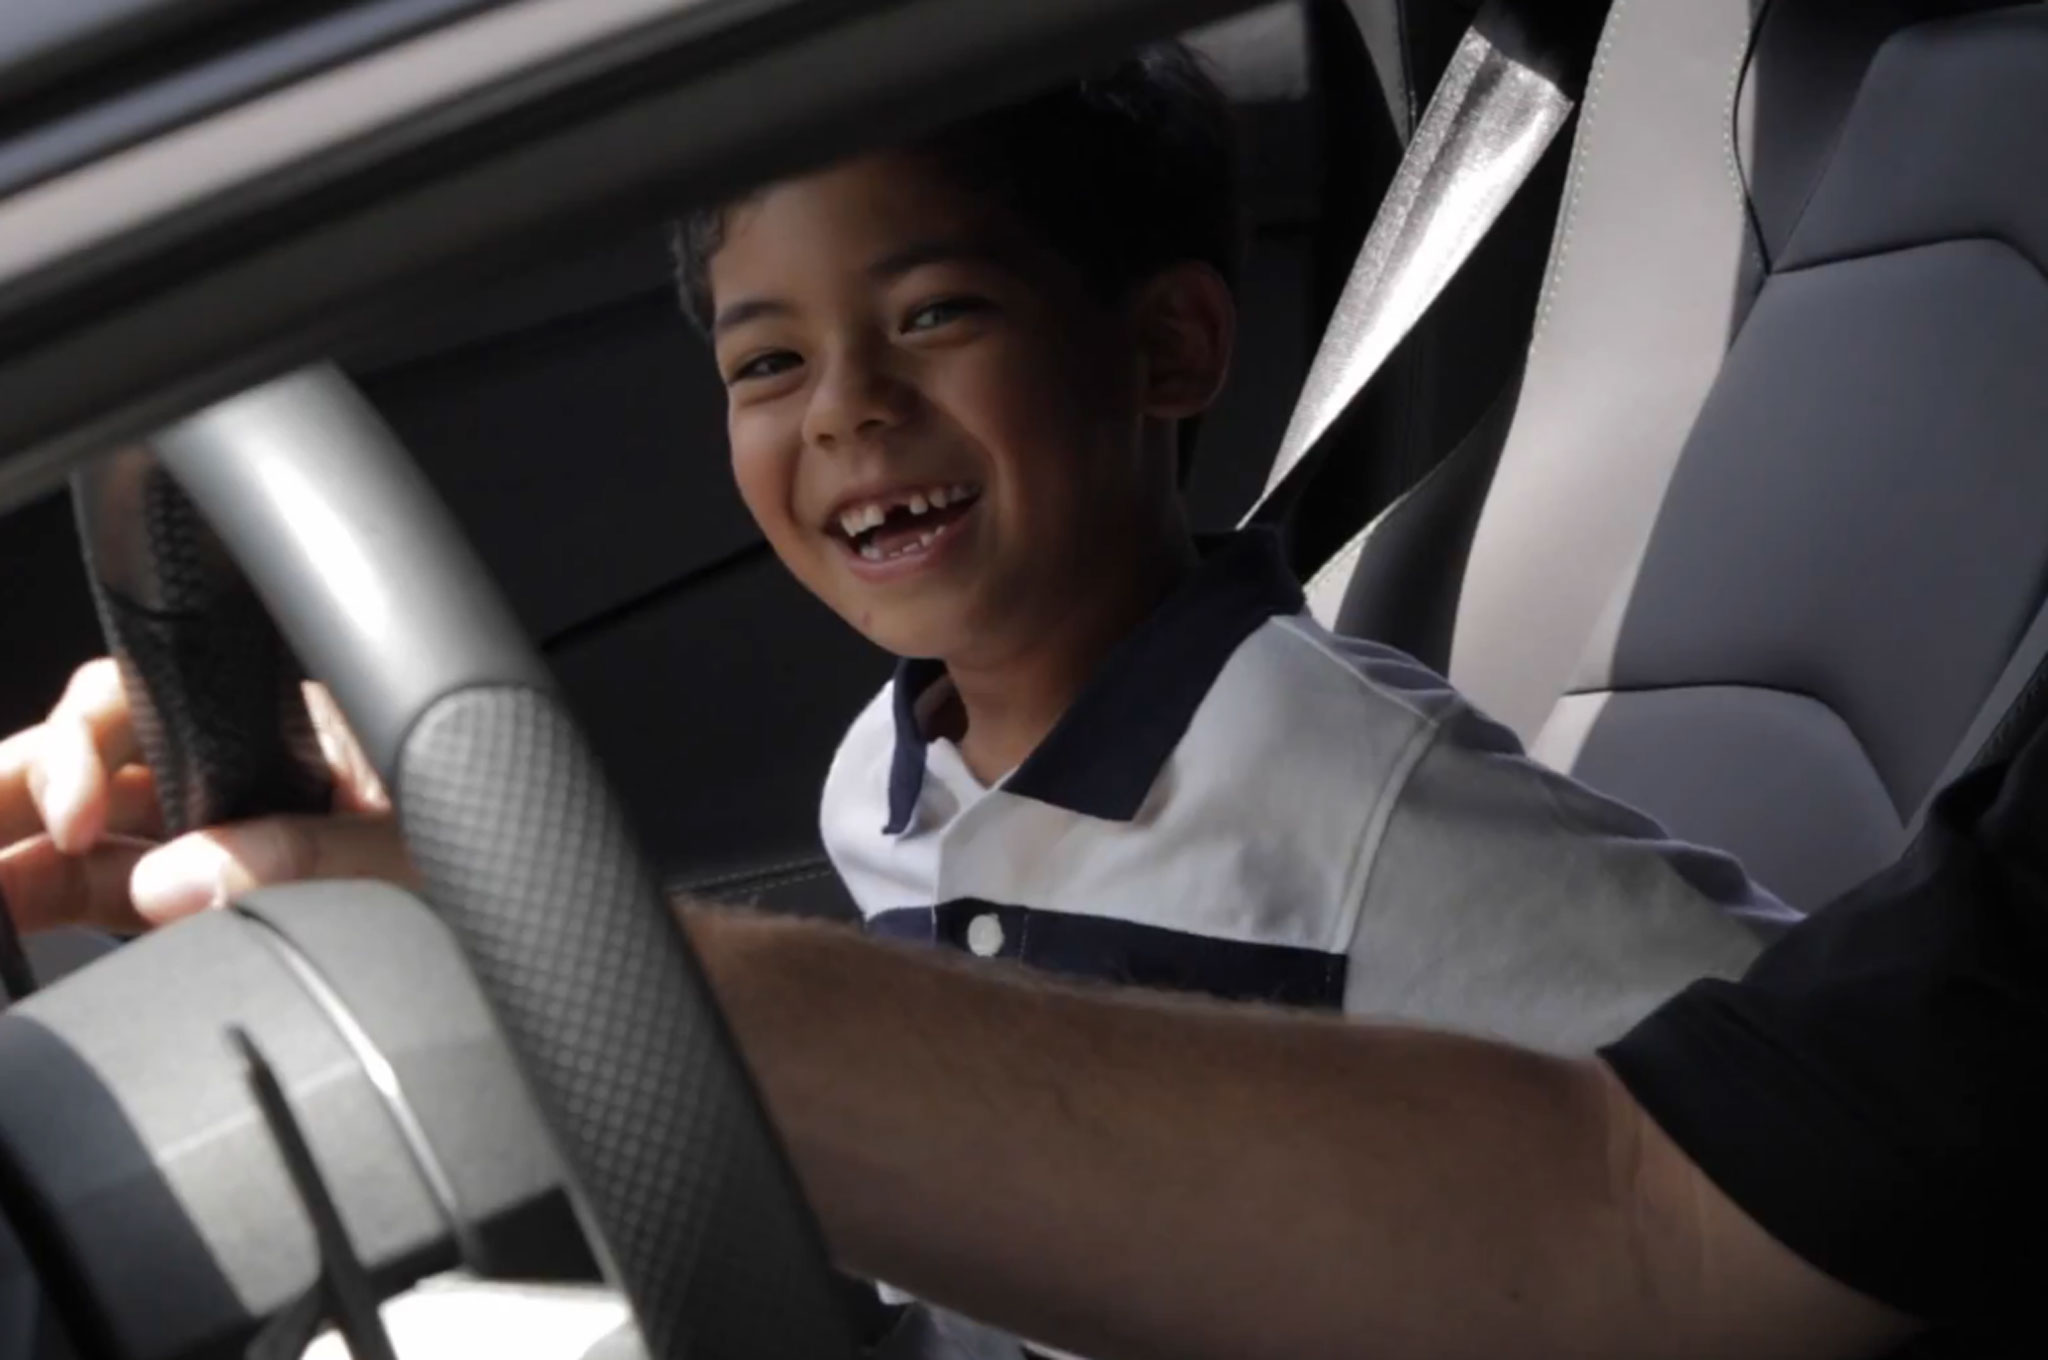 Lamborghini-Obsessed 7-Year-Old Gets Surprise Visit on His Birthday